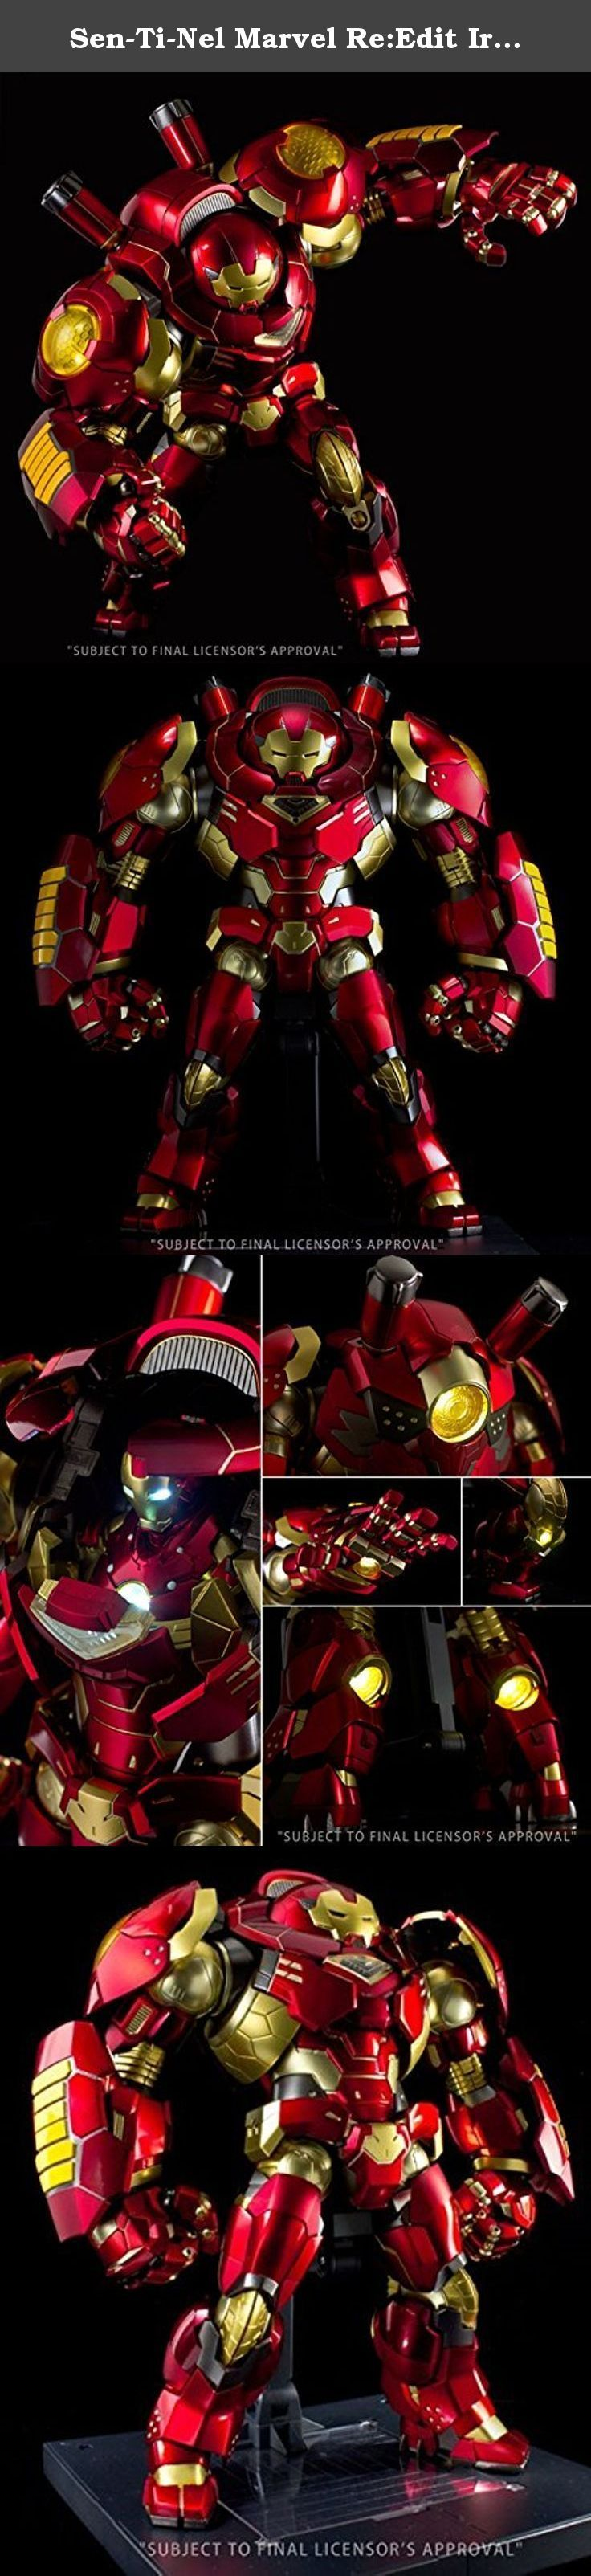 Sen-Ti-Nel Marvel Re:Edit Iron Man Hulkbuster Action Figure. Introducing the 5th installment in the RE:EDIT IRON MAN series: Hulkbuster, the anti-Hulk armor! This beast has a ton of amazing features including retraction for the head armor, opening and closing gimmicks for the chest hatch, and LED lights throughout its body. Also with the upper torso of the Bleeding Edge armor inside, (complete with light-up gimmicks for its eyes and Arc Reactor), the Hulkbuster armor is a truly massive…